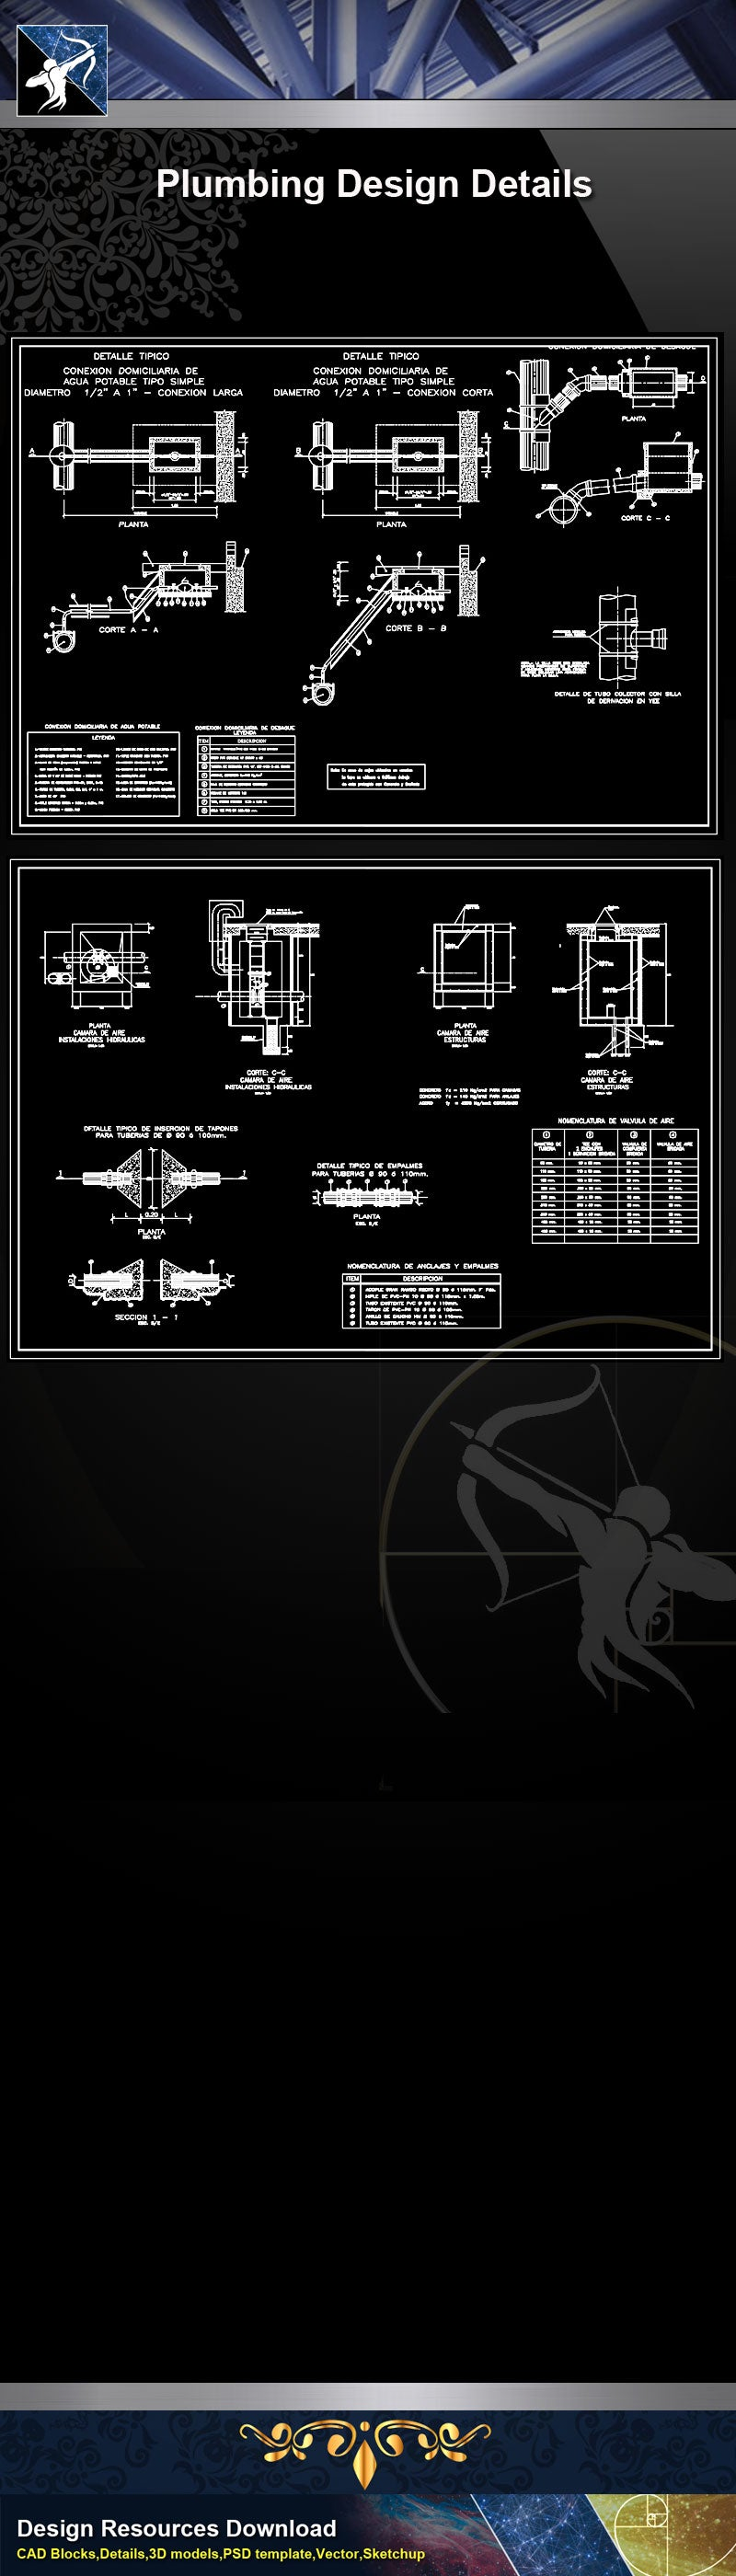 【Sanitations Details】Plumbing Design